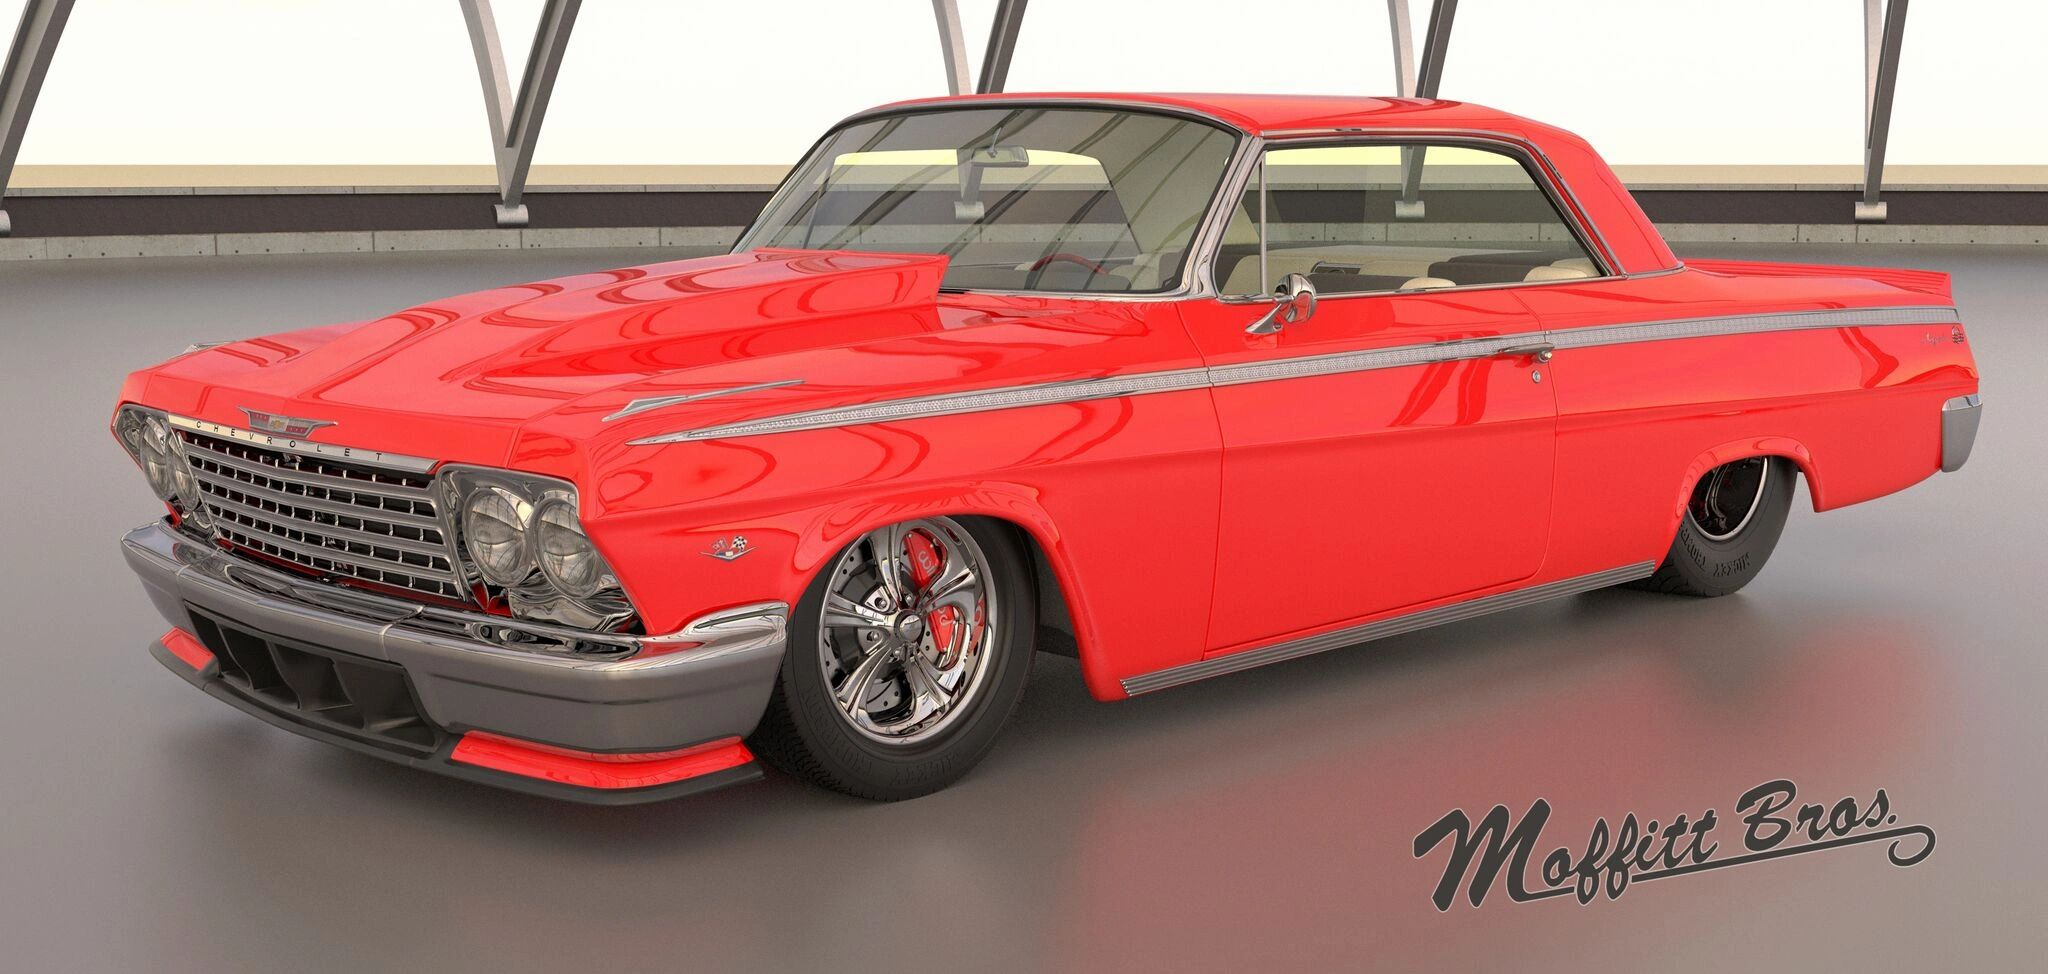 Custom Prostreet 1962 Impala featuring the Rat Tail Wheels, TMI Interior, full custom treatment.